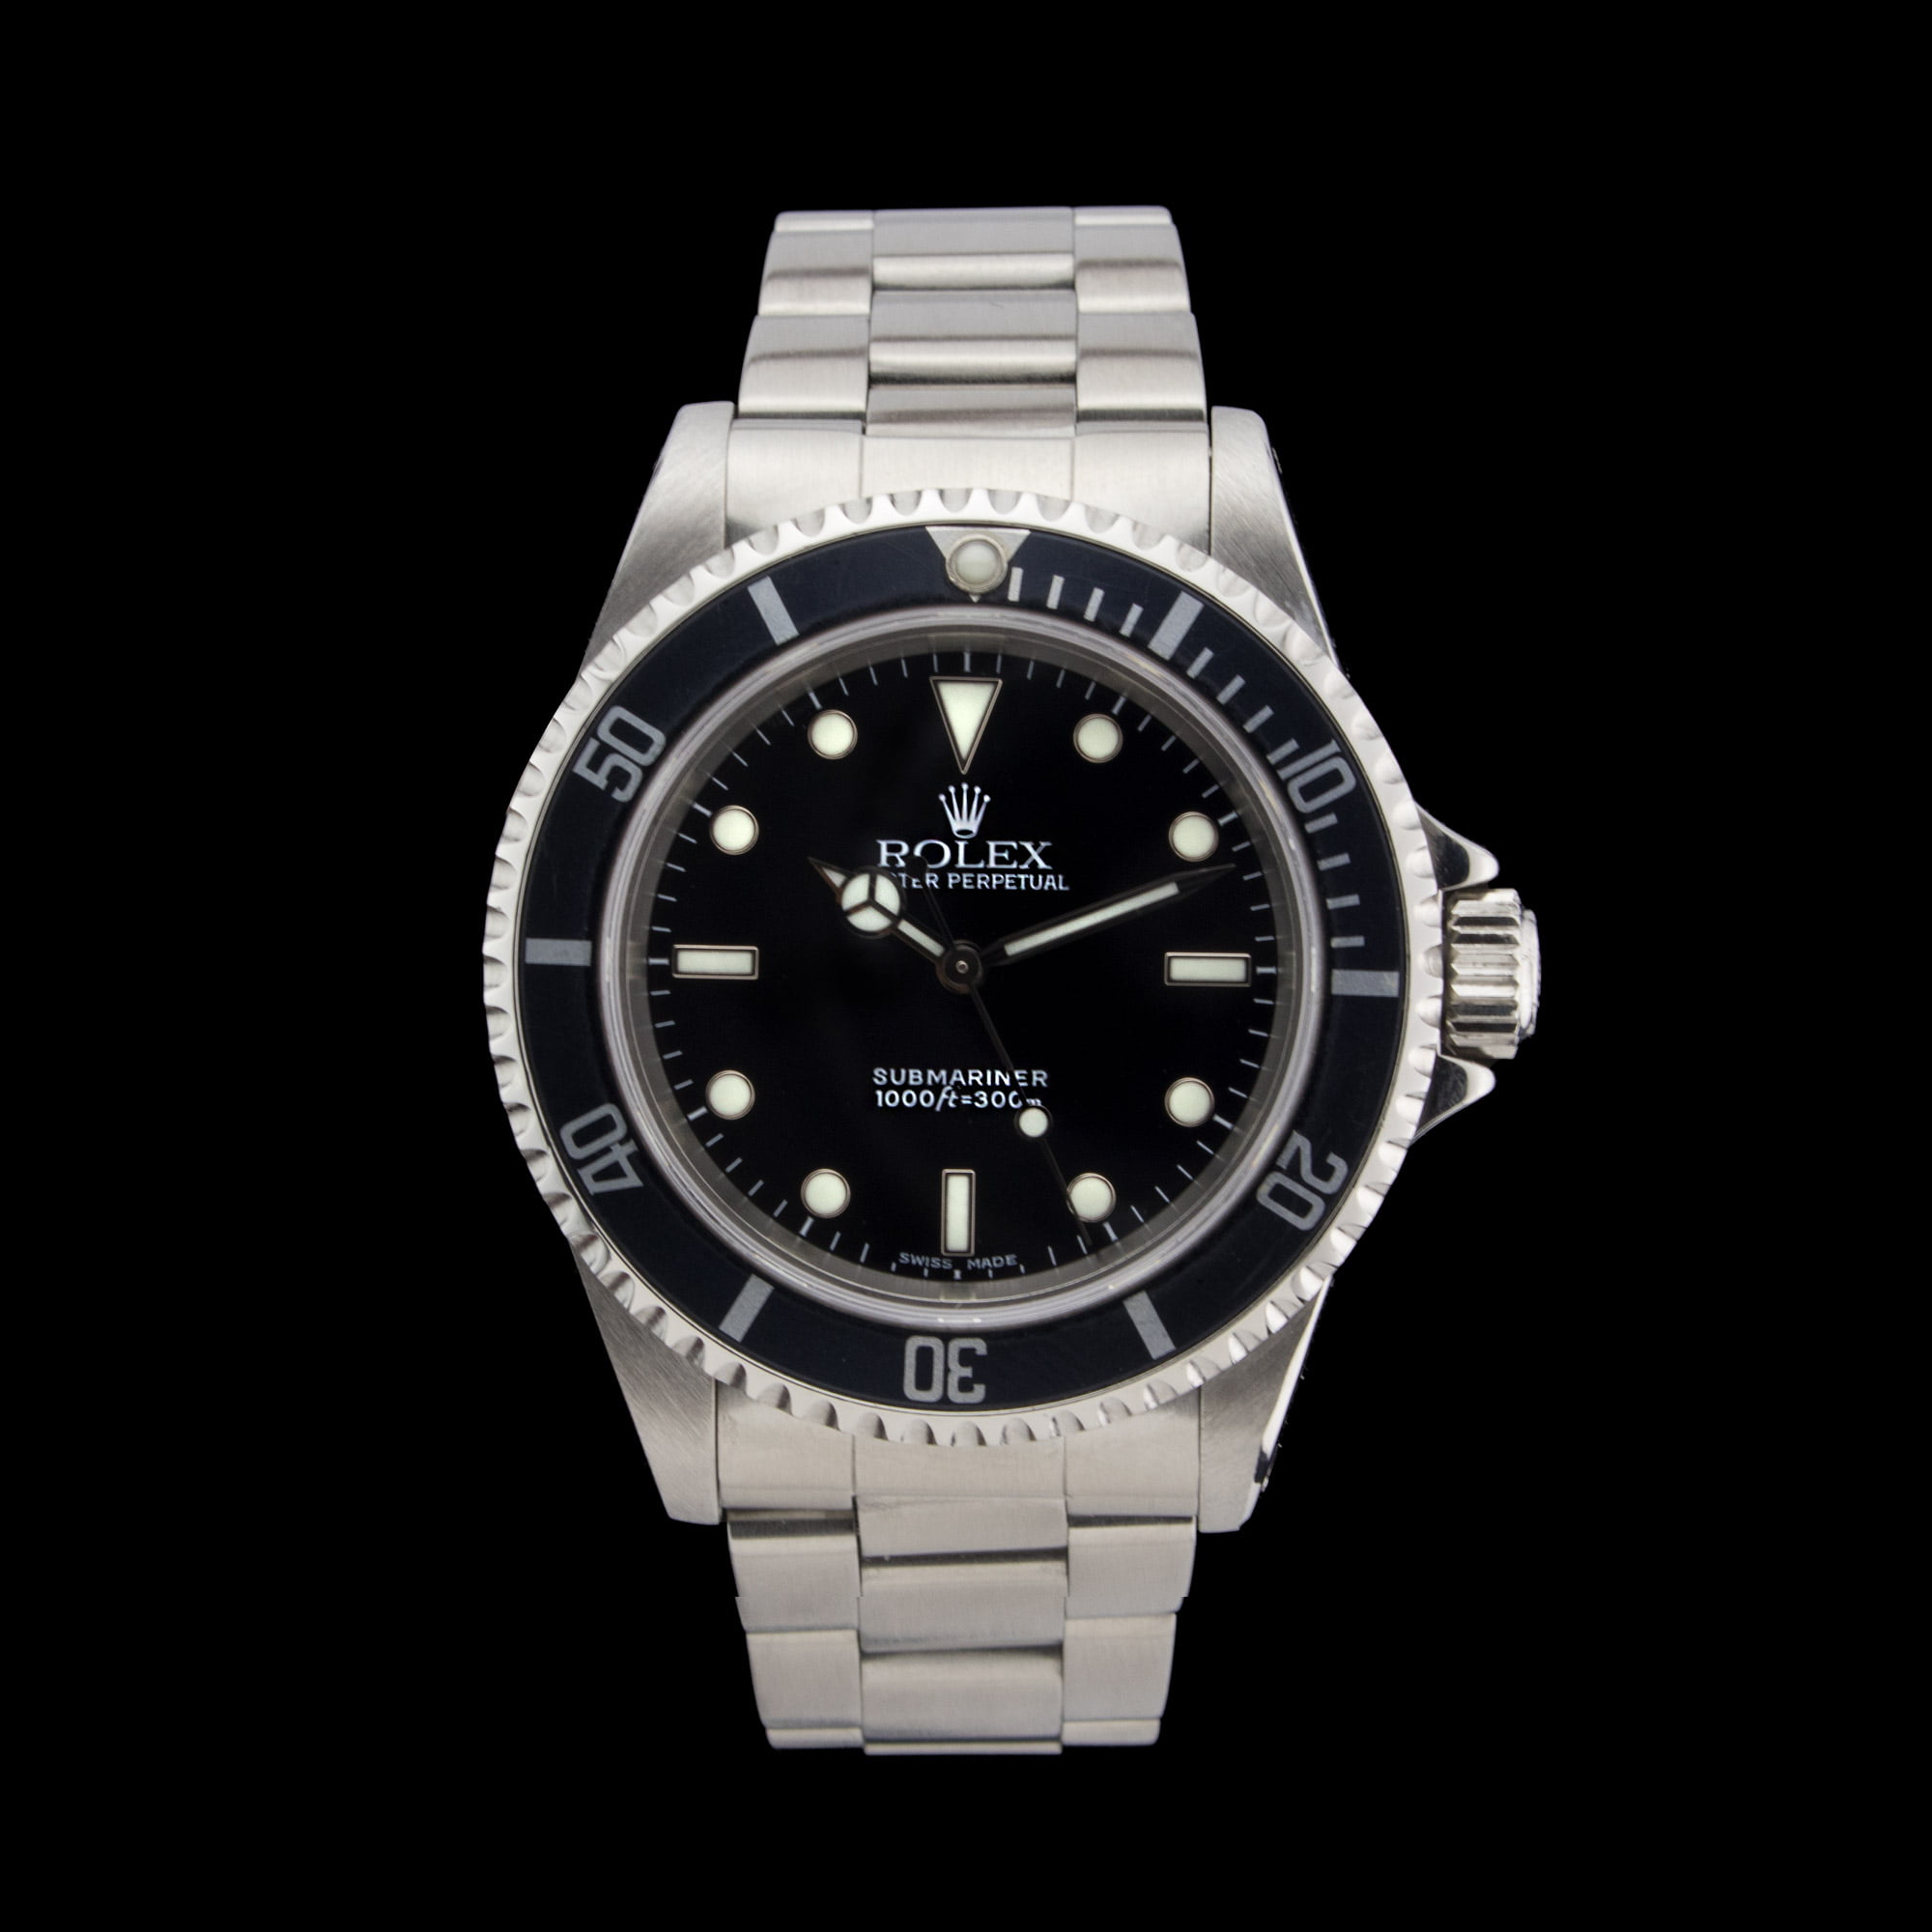 Rolex Submariner 14060M - AMSTERDAM VINTAGE WATCHES